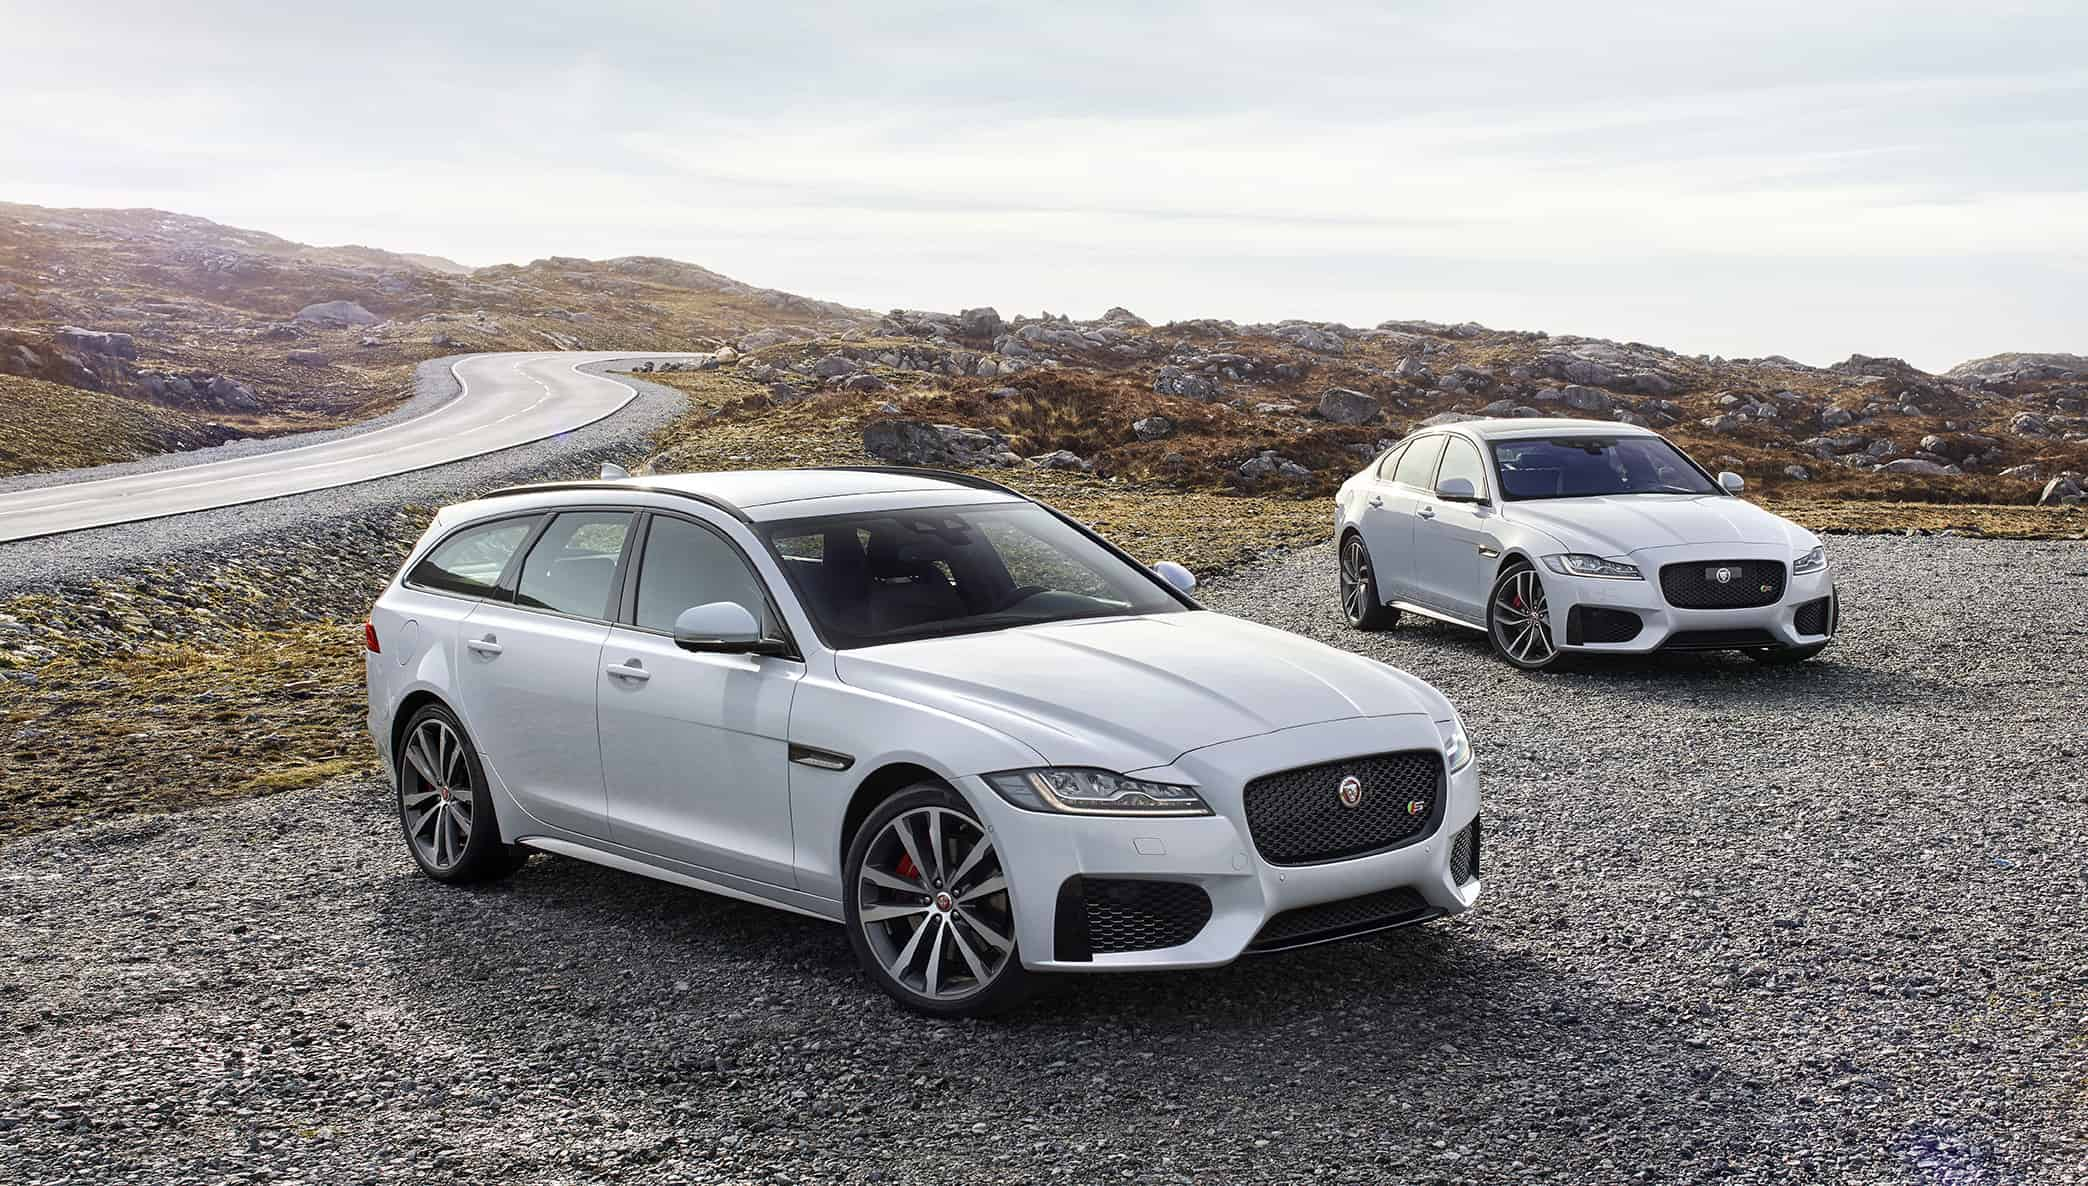 18 Concept of 2020 Jaguar Sportbrake Prices with 2020 Jaguar Sportbrake